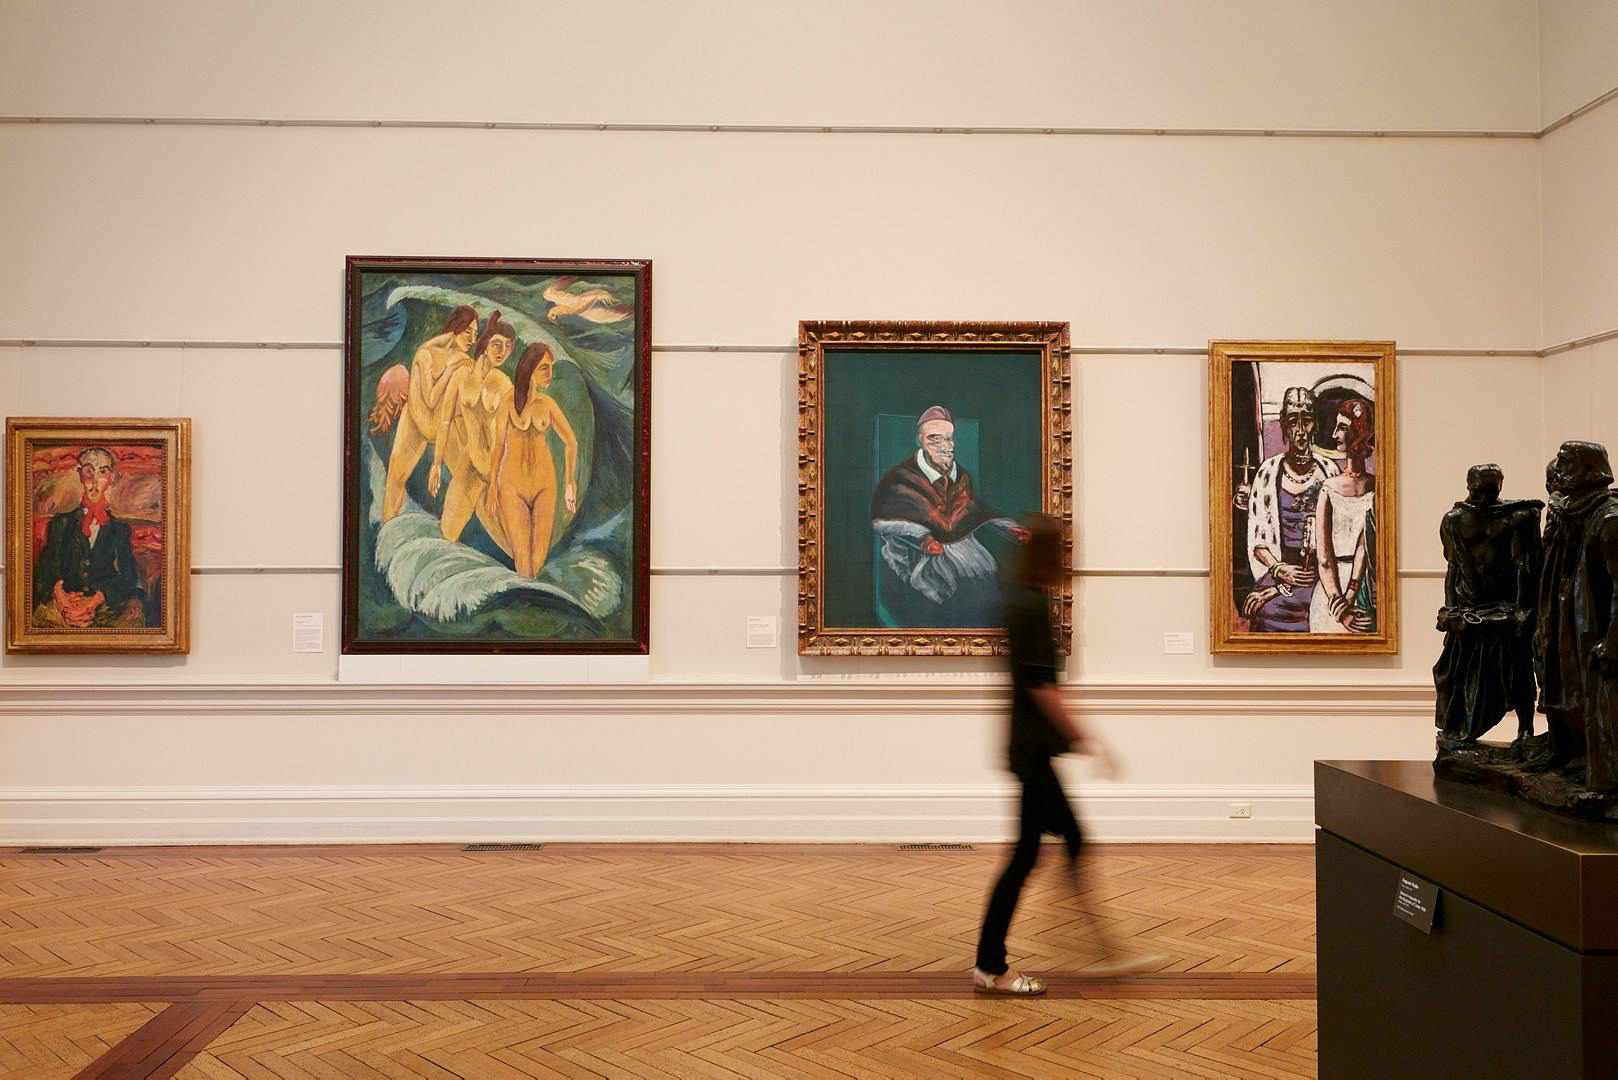 Paintings hanging in the Art Gallery of NSW